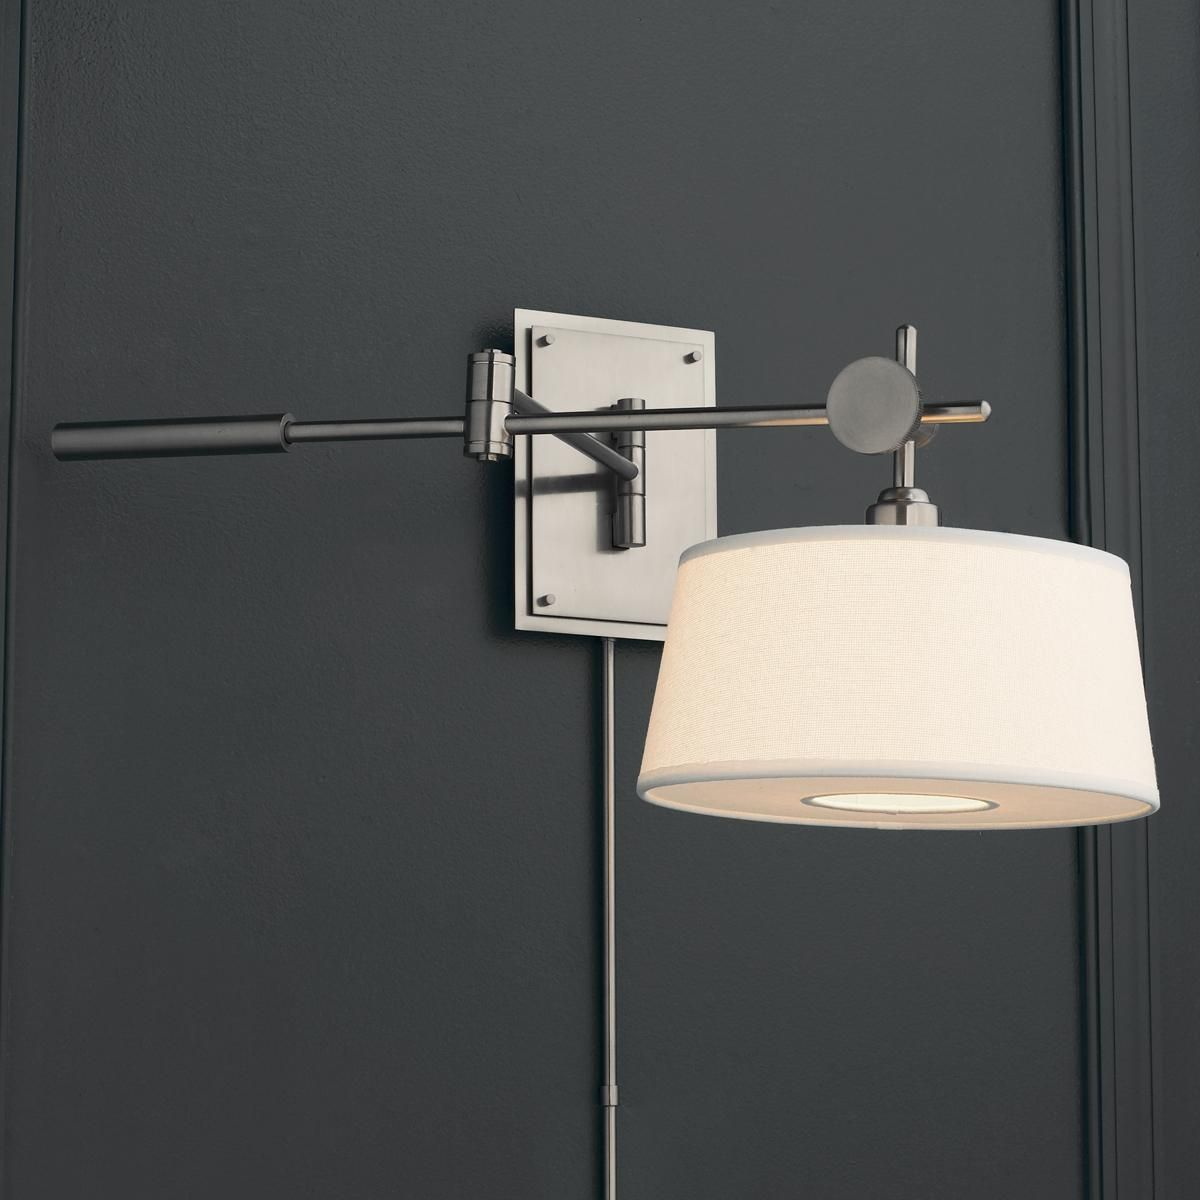 perfect bedroom wall sconces. Swing Arm Wall Lamps Can Be The Perfect Lighting Solution When Tabletop Space Is Not Available: Beside Beds, Behind Sofas, Between Bookshelves, Bedroom Sconces K